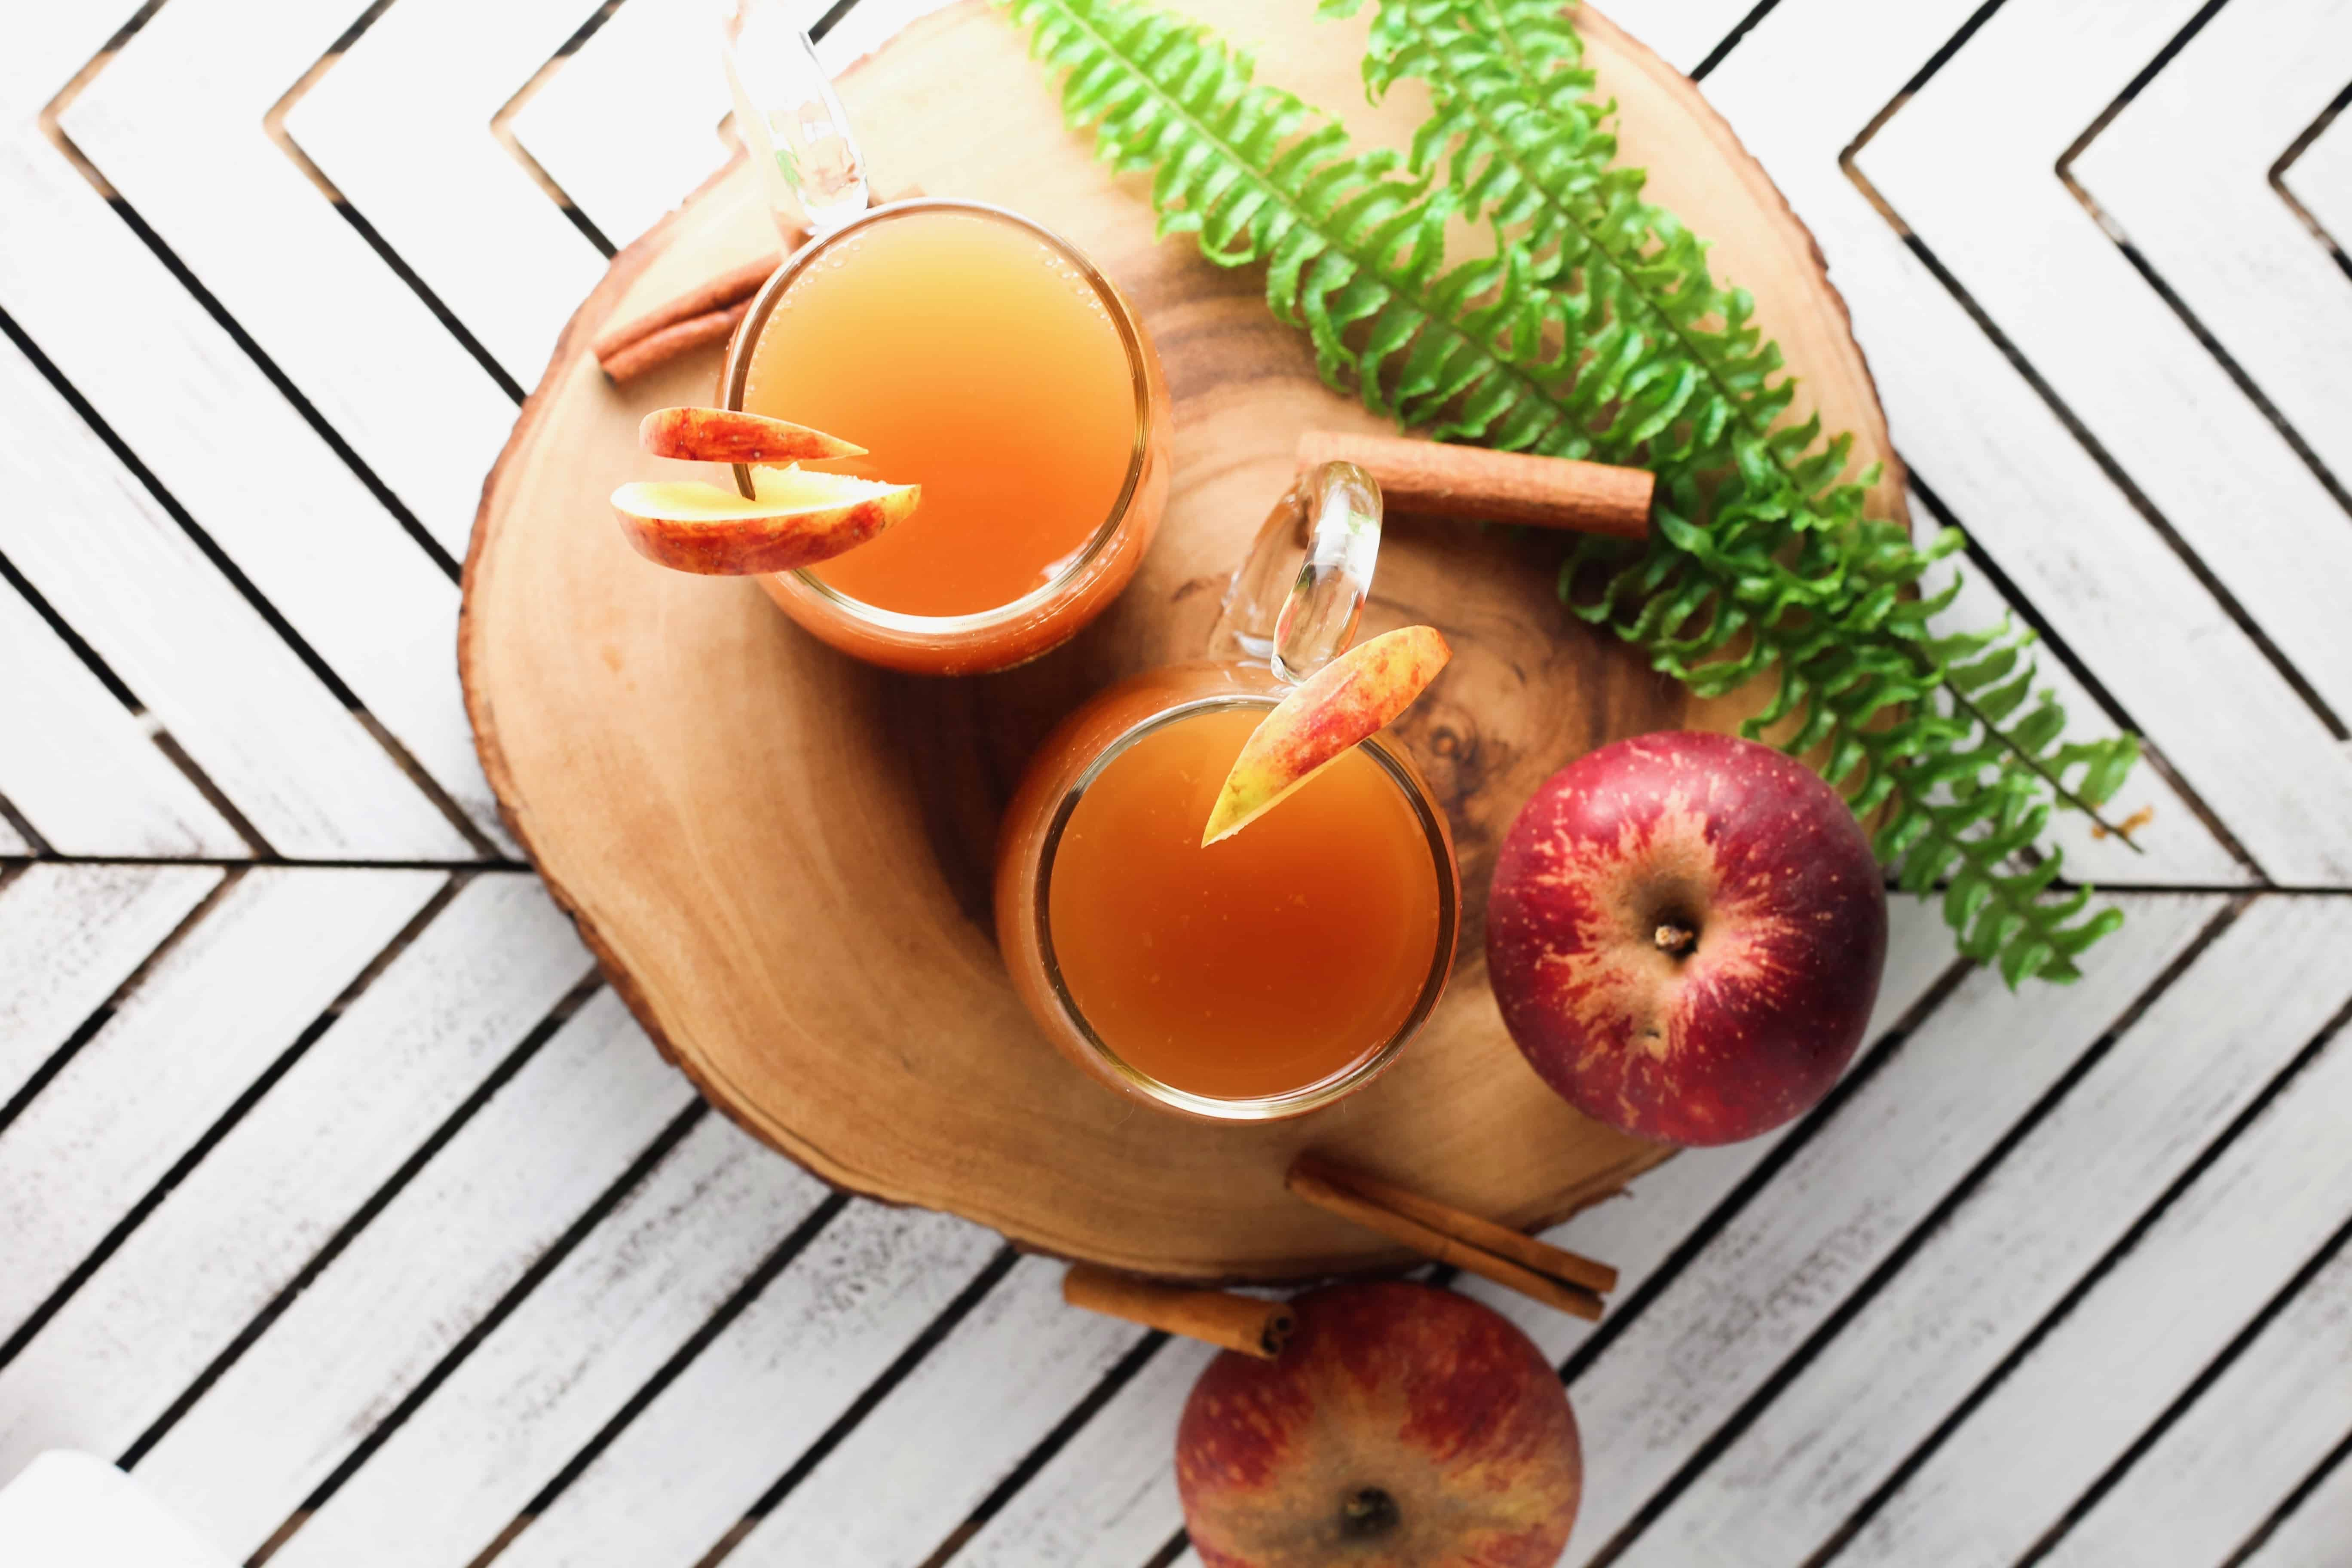 Overhead flatlay of two mugs with spiked apple cider, a fern, an apple and cinnamon sticks